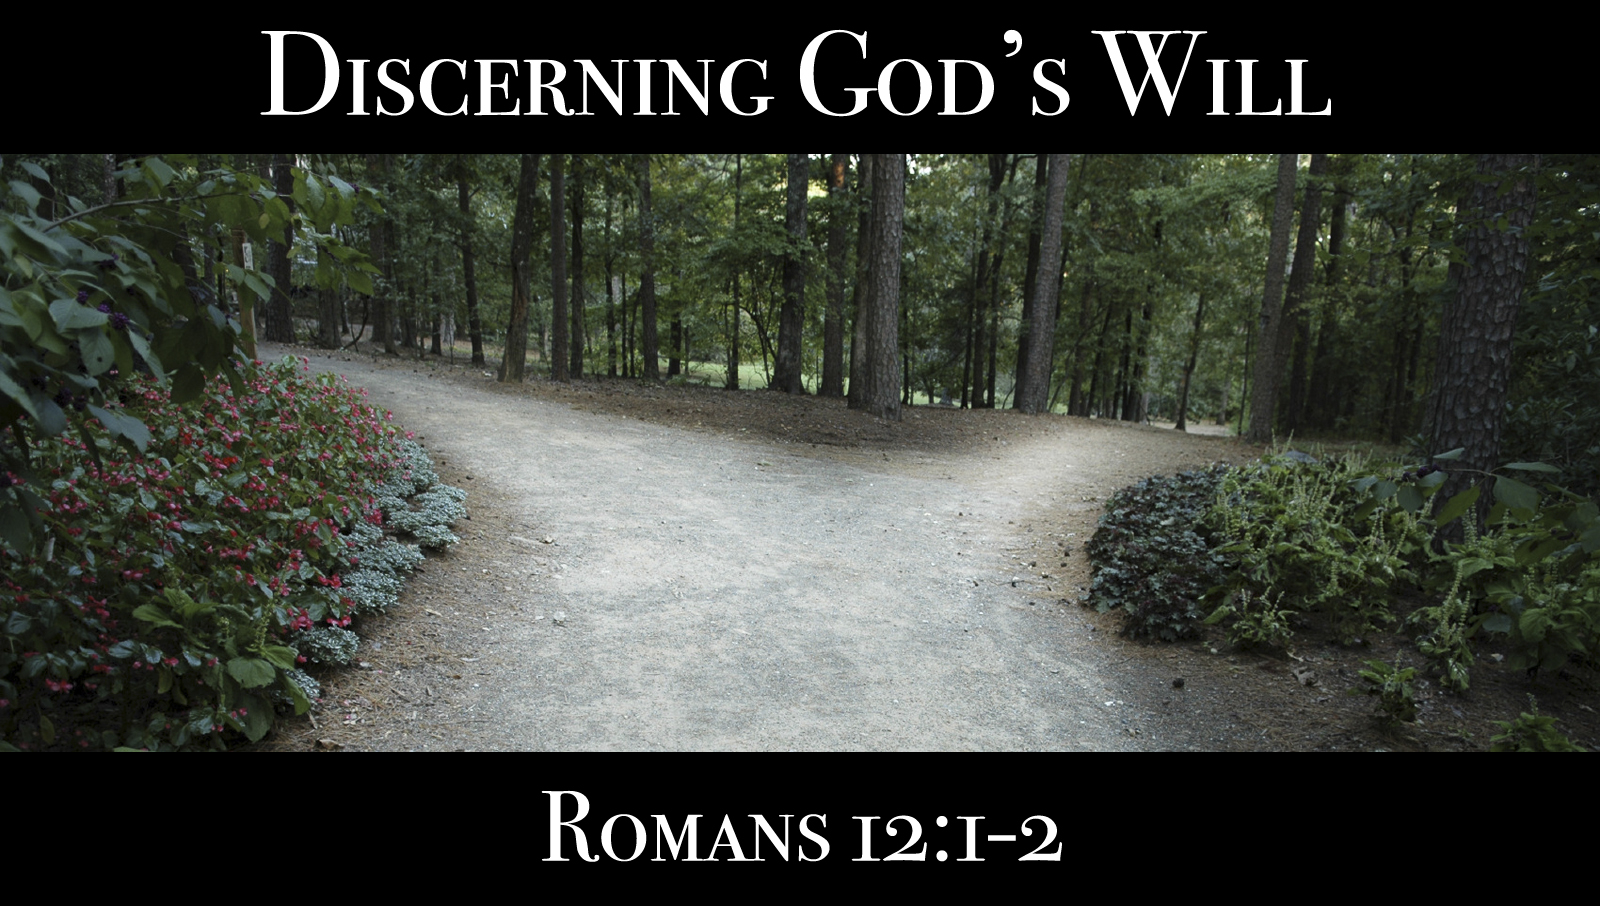 Discerning God's Will